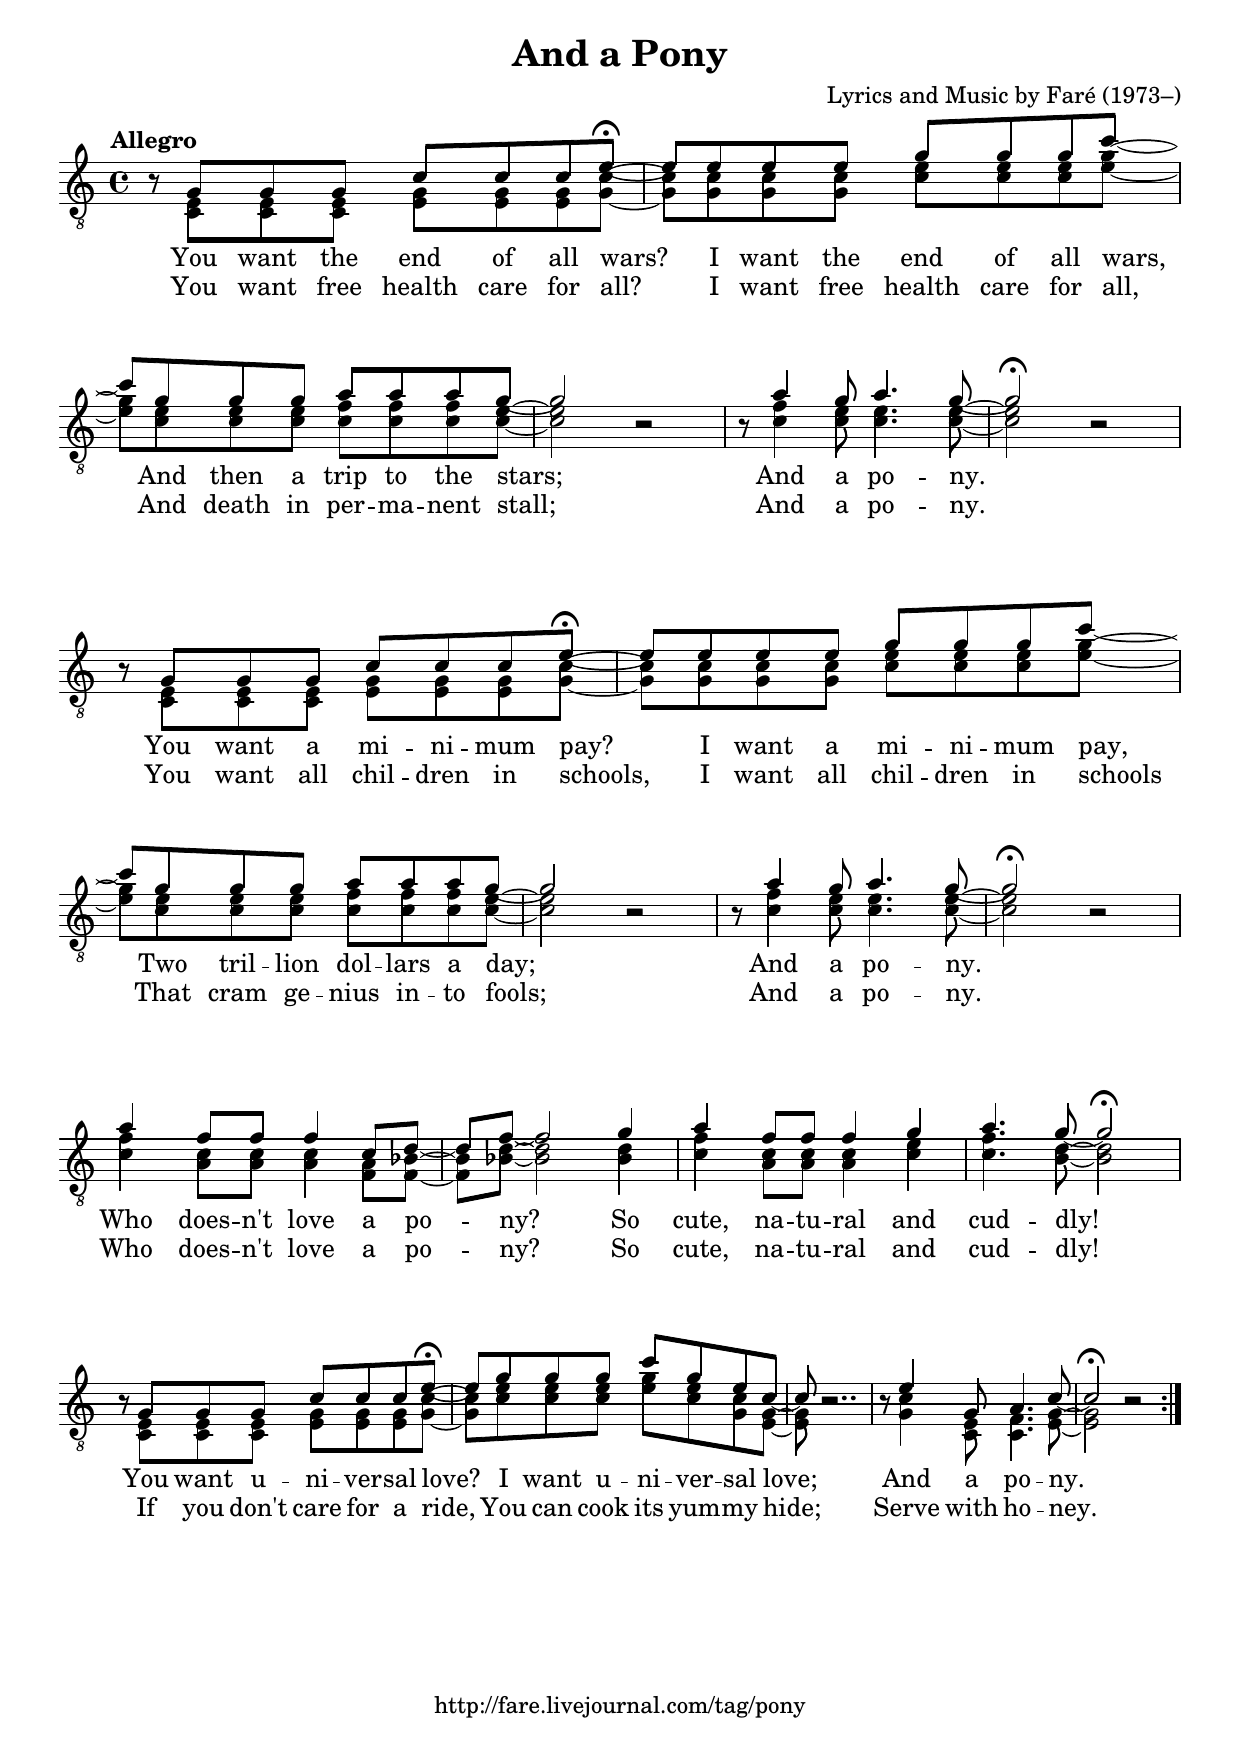 Worksheets In Music What Does Allegro Mean cybernethics ps wish granted heres a video from porcfest 2011 well do even better next year